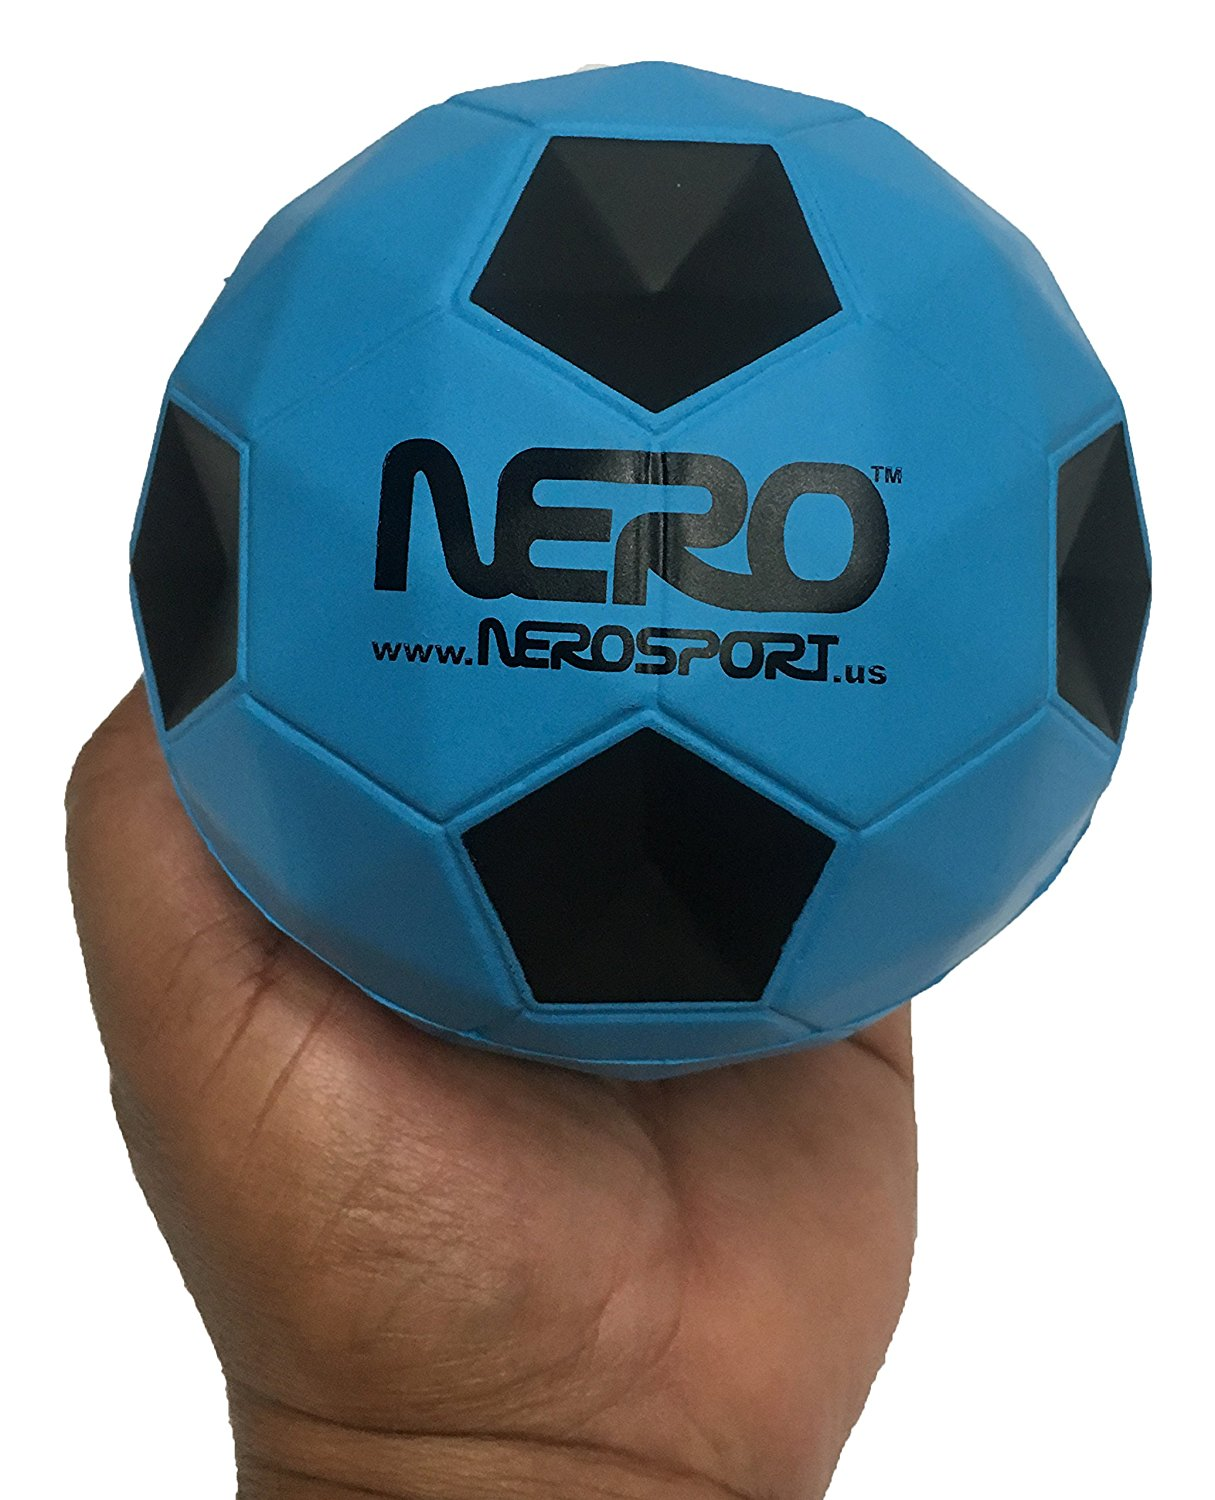 """Nero NS-R12 Rubber High Bounce Agility Toy Ball 4.7 inch """"Our Biggest High Bounce Ball Yet"""" Great For the Streets Playground Park Back Yard Agility Ball Bulk Price Birthdays Summer Ball"""